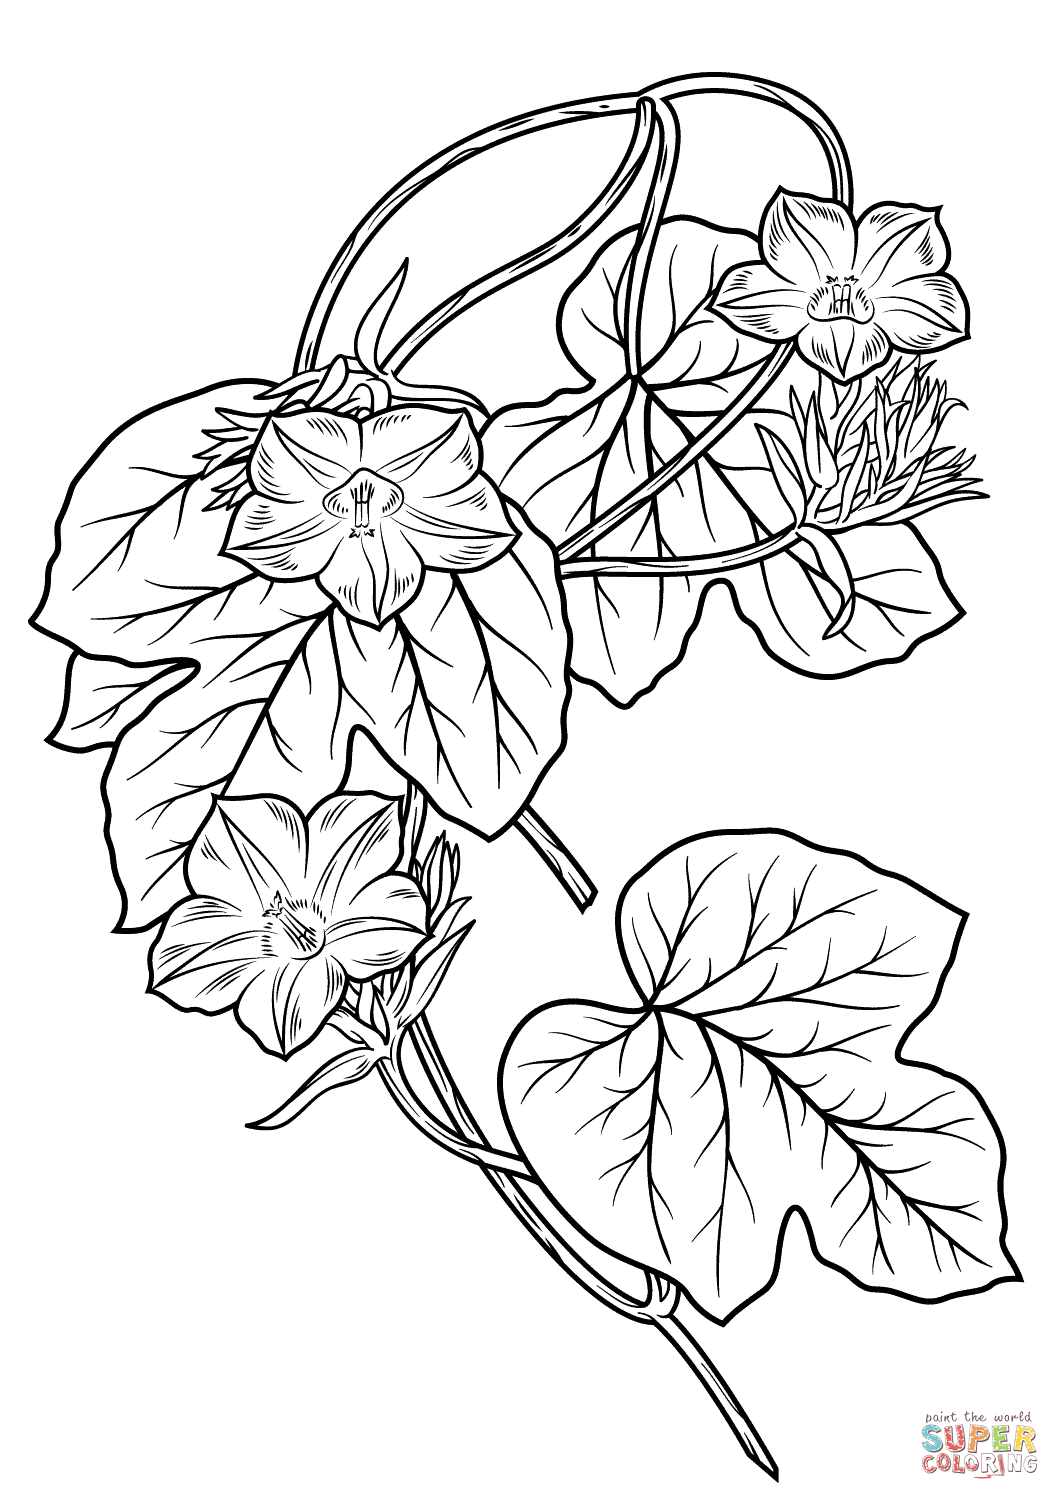 Morning Glory Flower Coloring Page